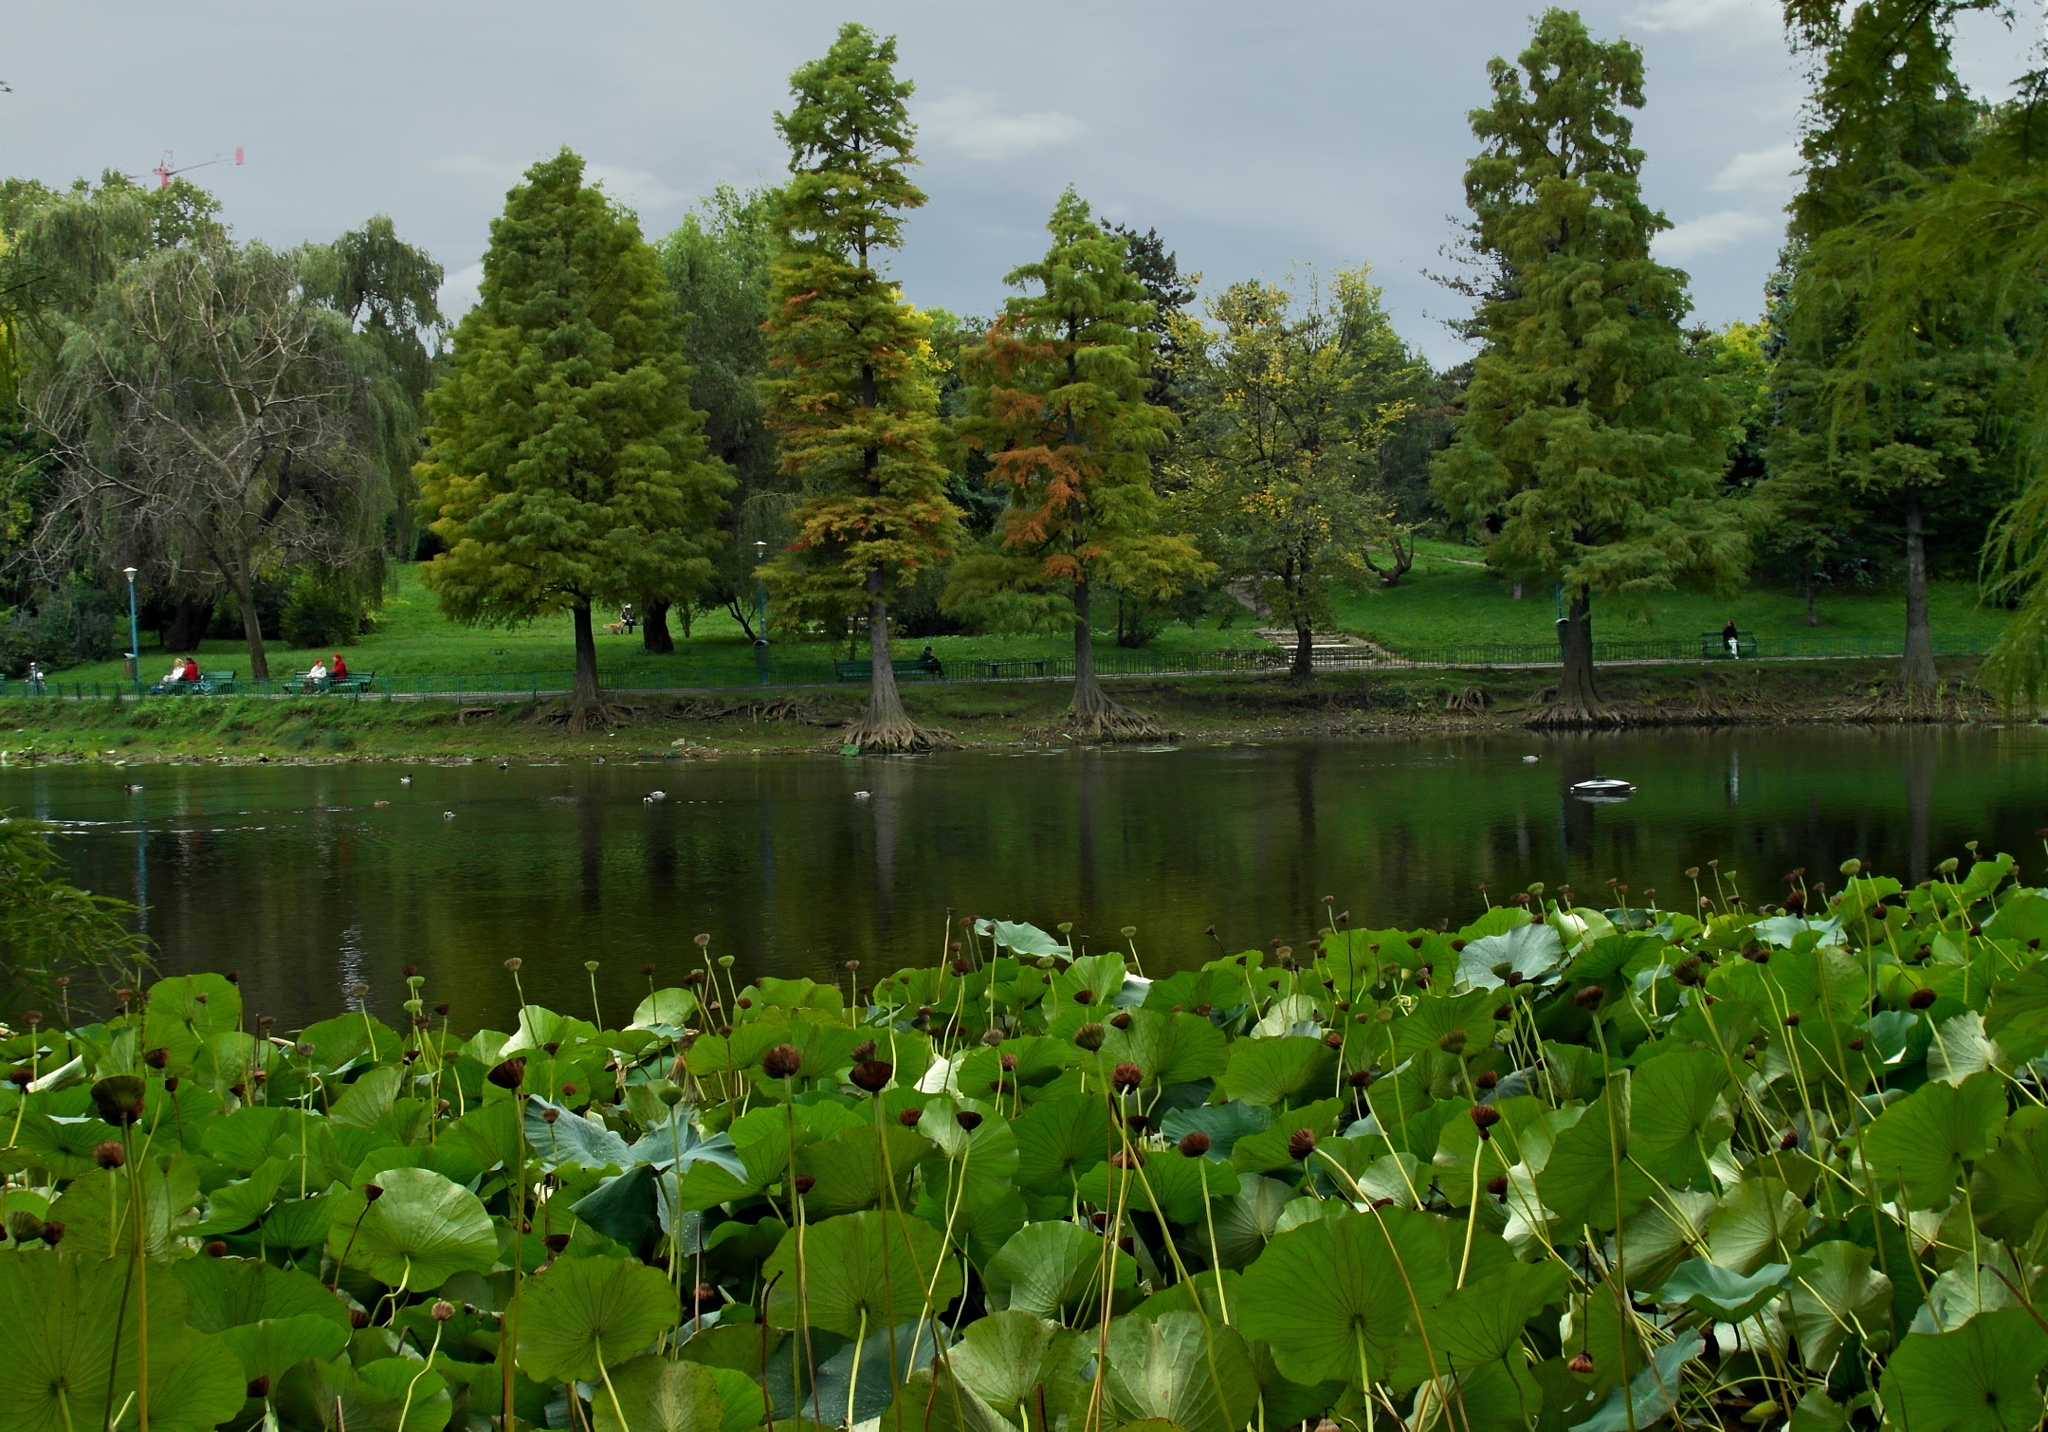 Autumn day,in Circus park 1.Bucharest by staicugheorghe3